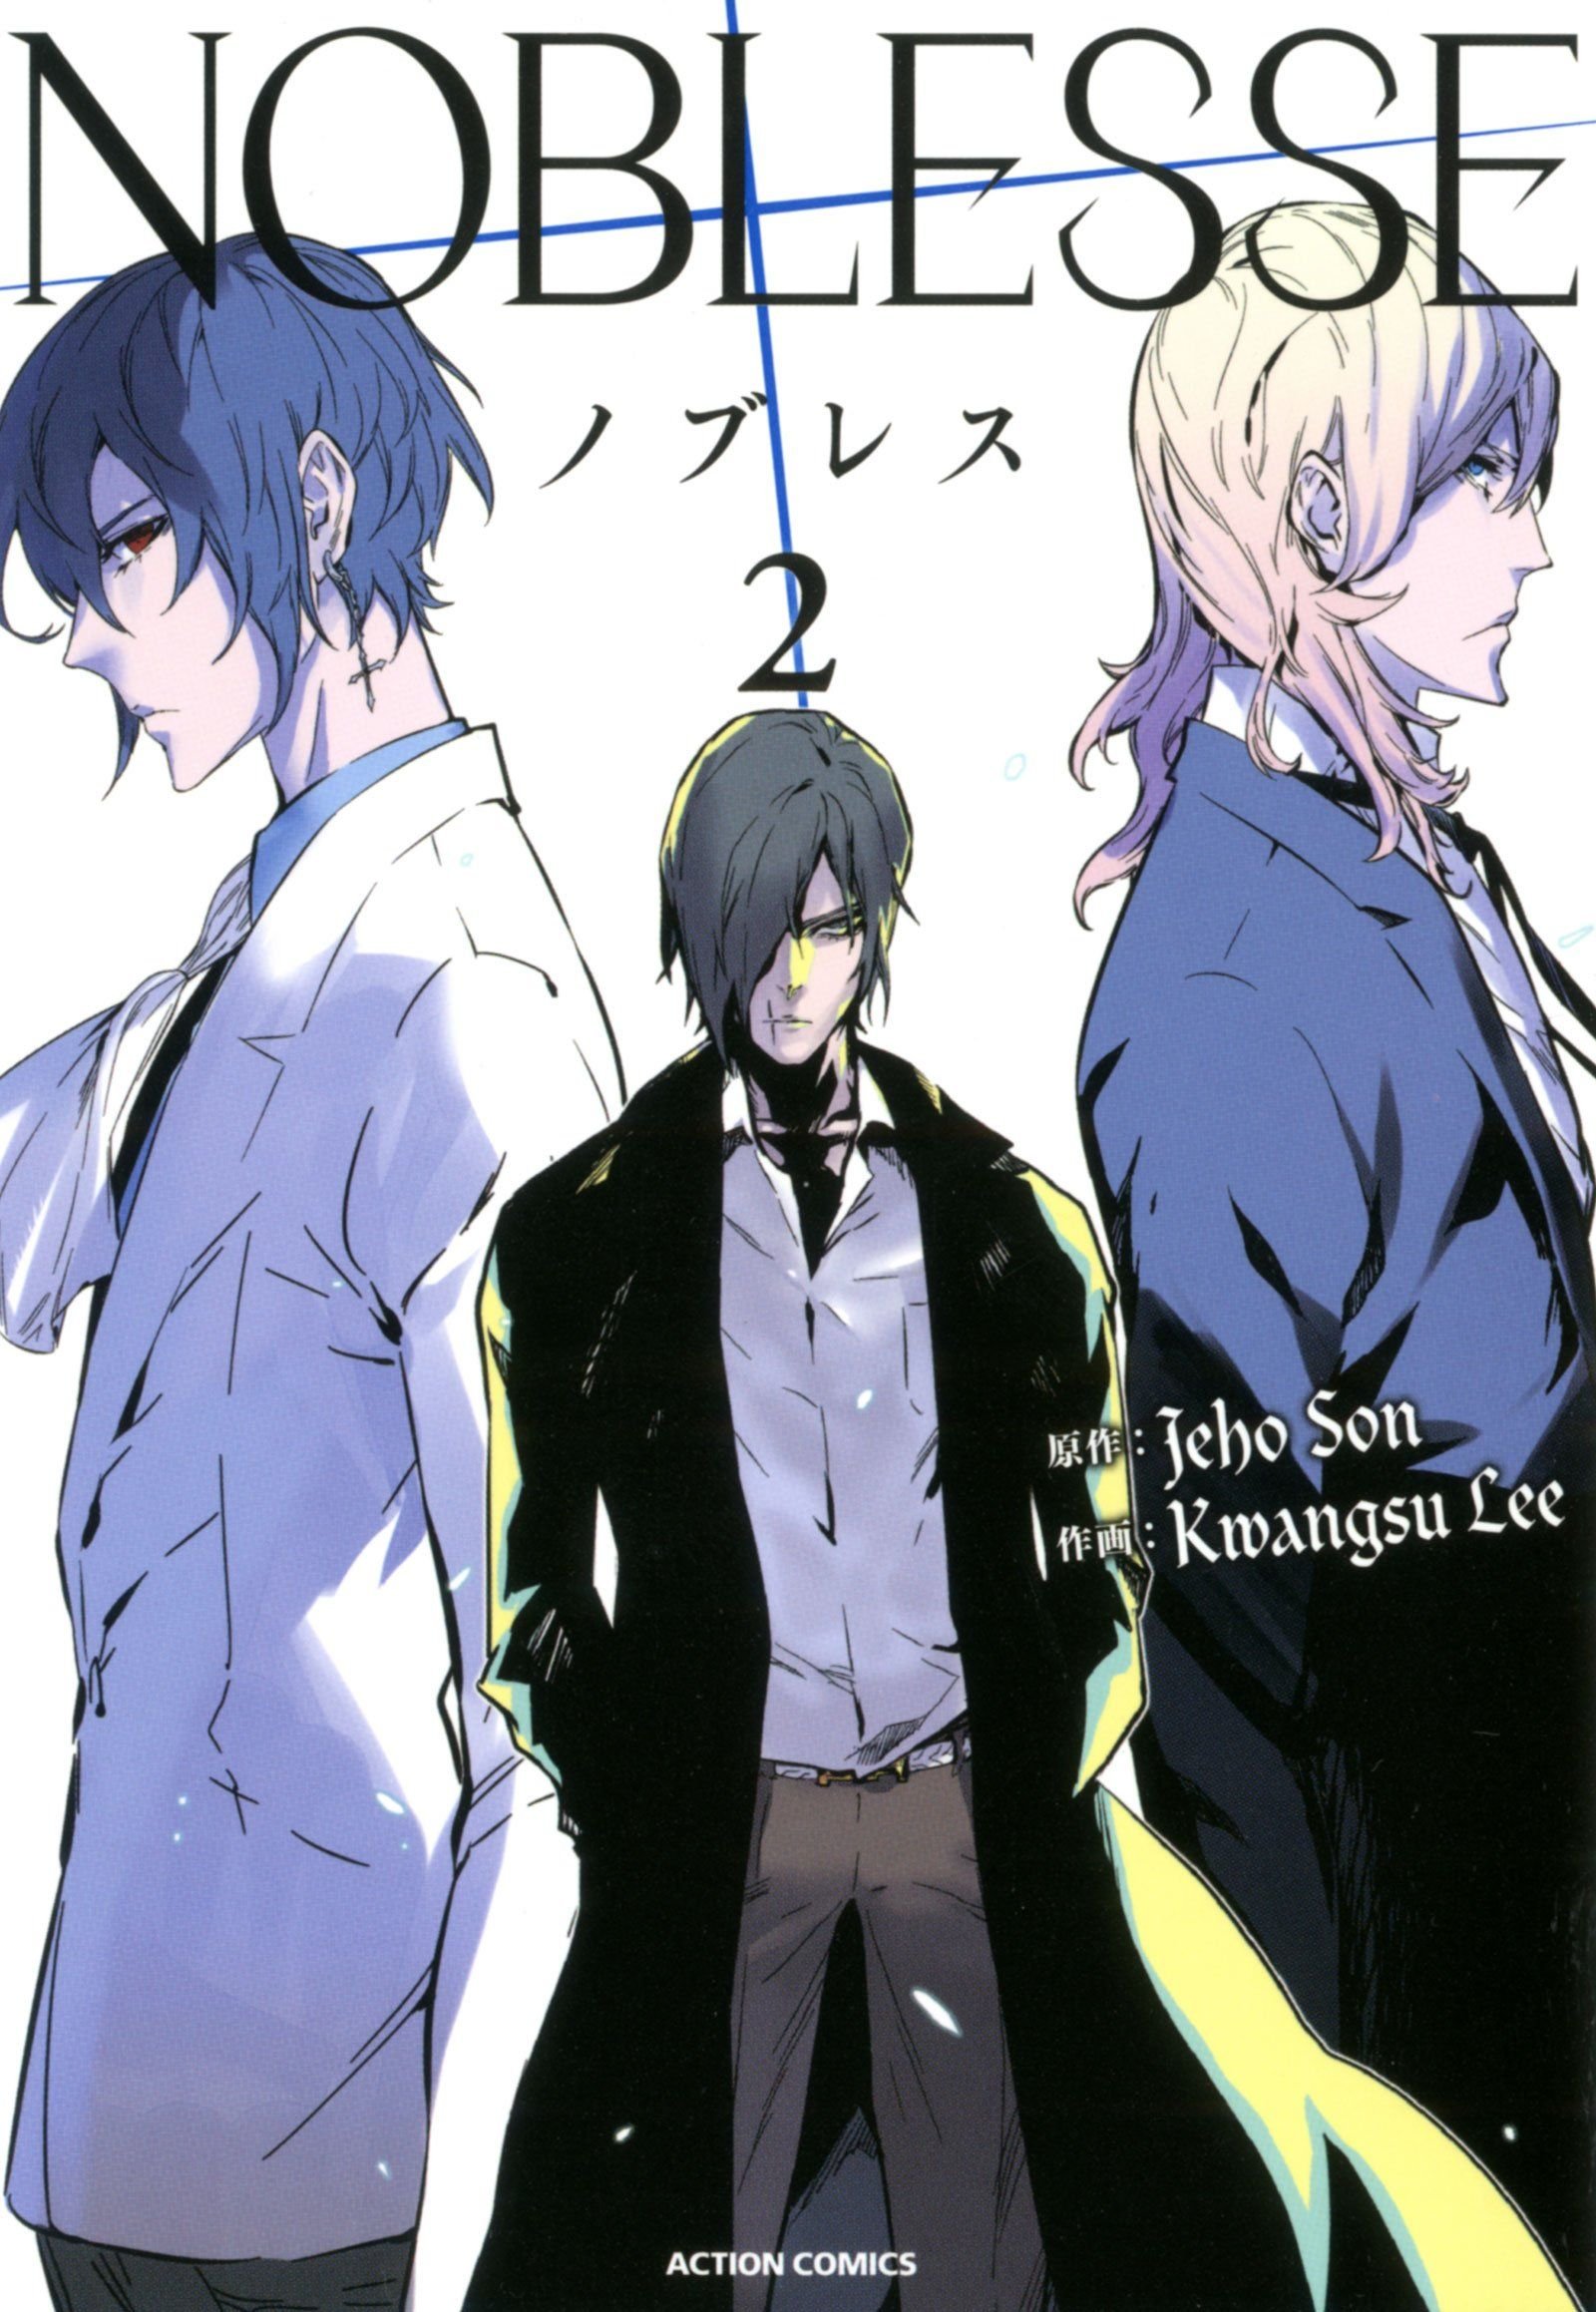 Noblesse Noblesse, Anime guy blue hair, Fantasy heroes